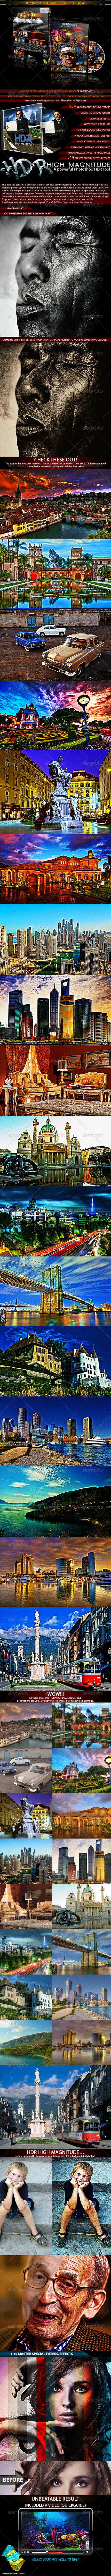 GraphicRiver High Magnitude HDR Image Action 1635793